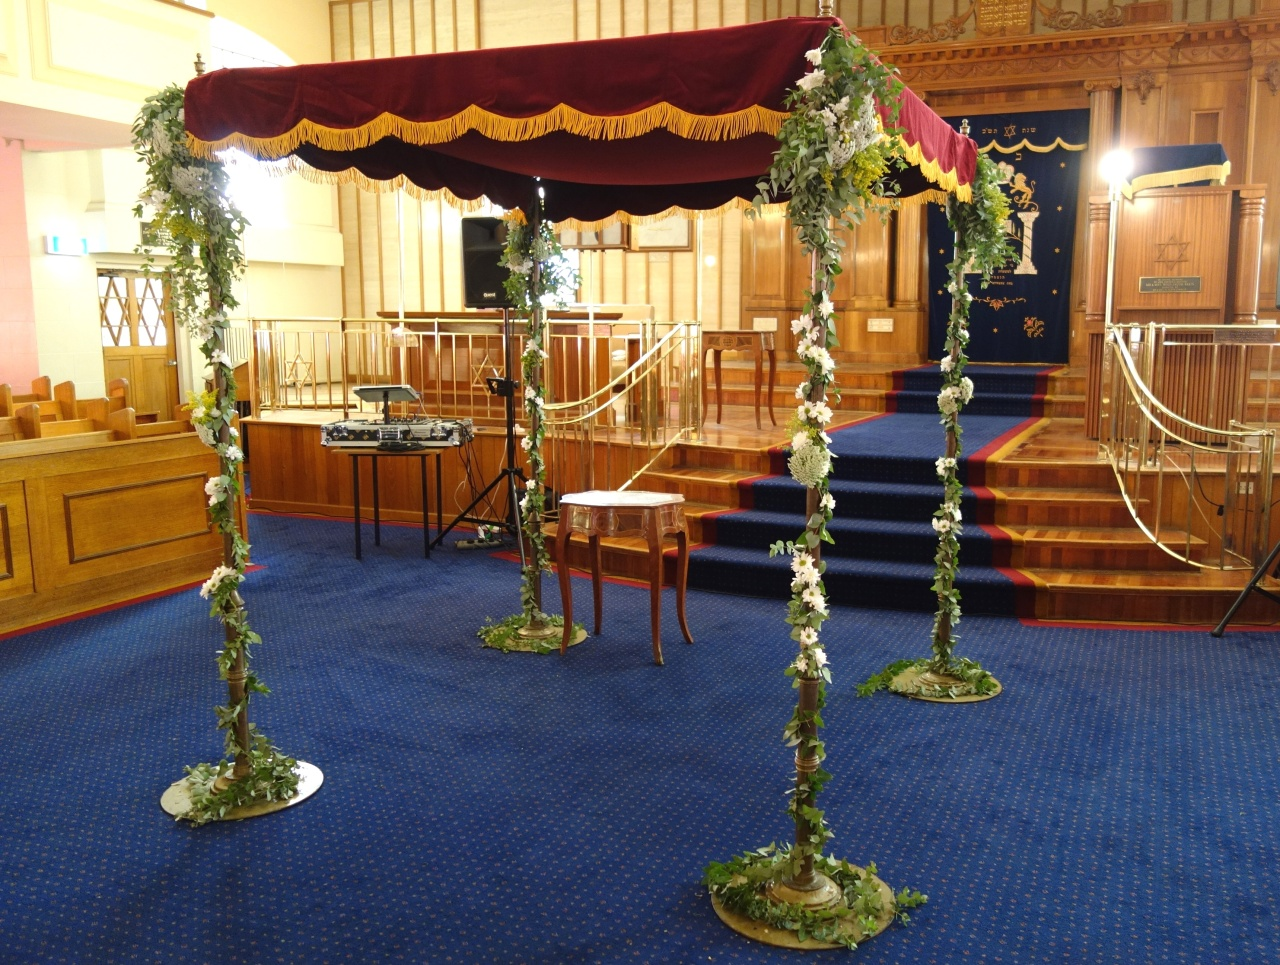 Chuppah styled with daisies and other flowers